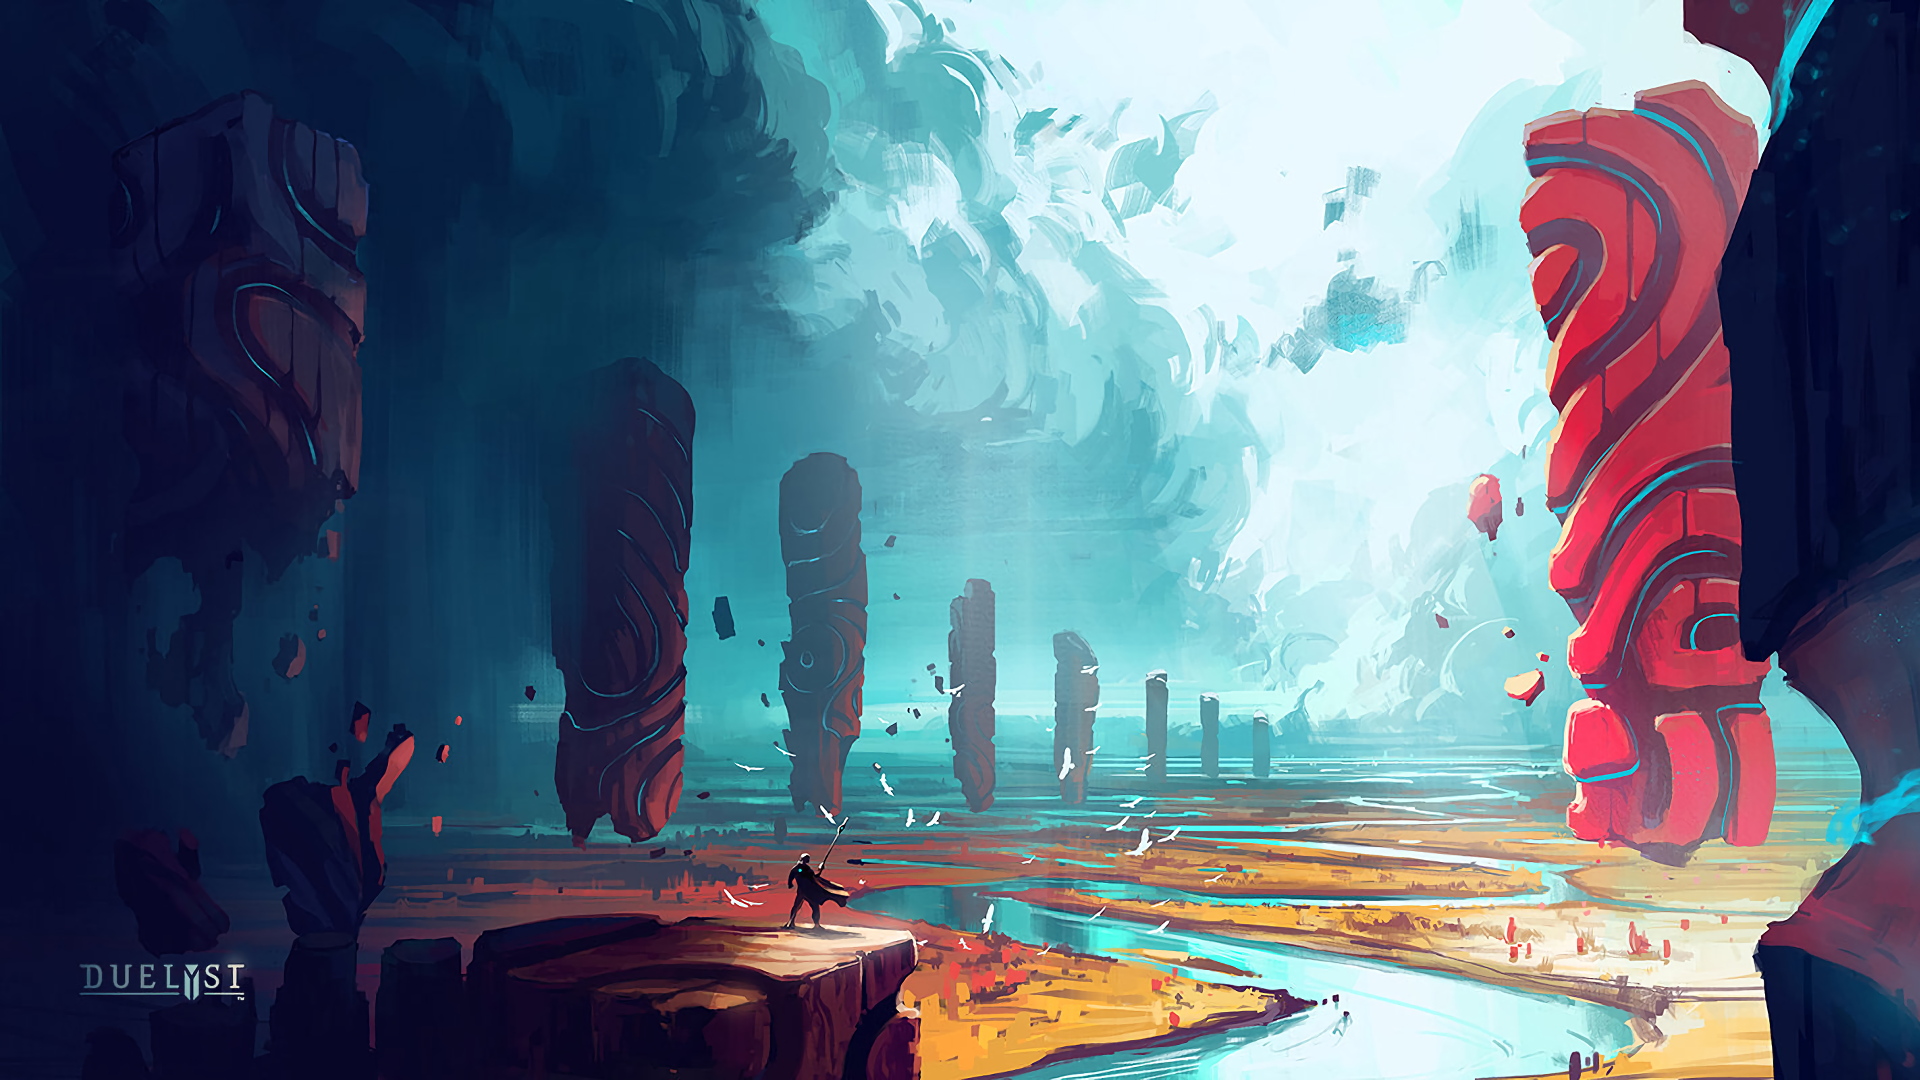 Id 860734 Wallpaper Abyss: Duelyst HD Wallpaper